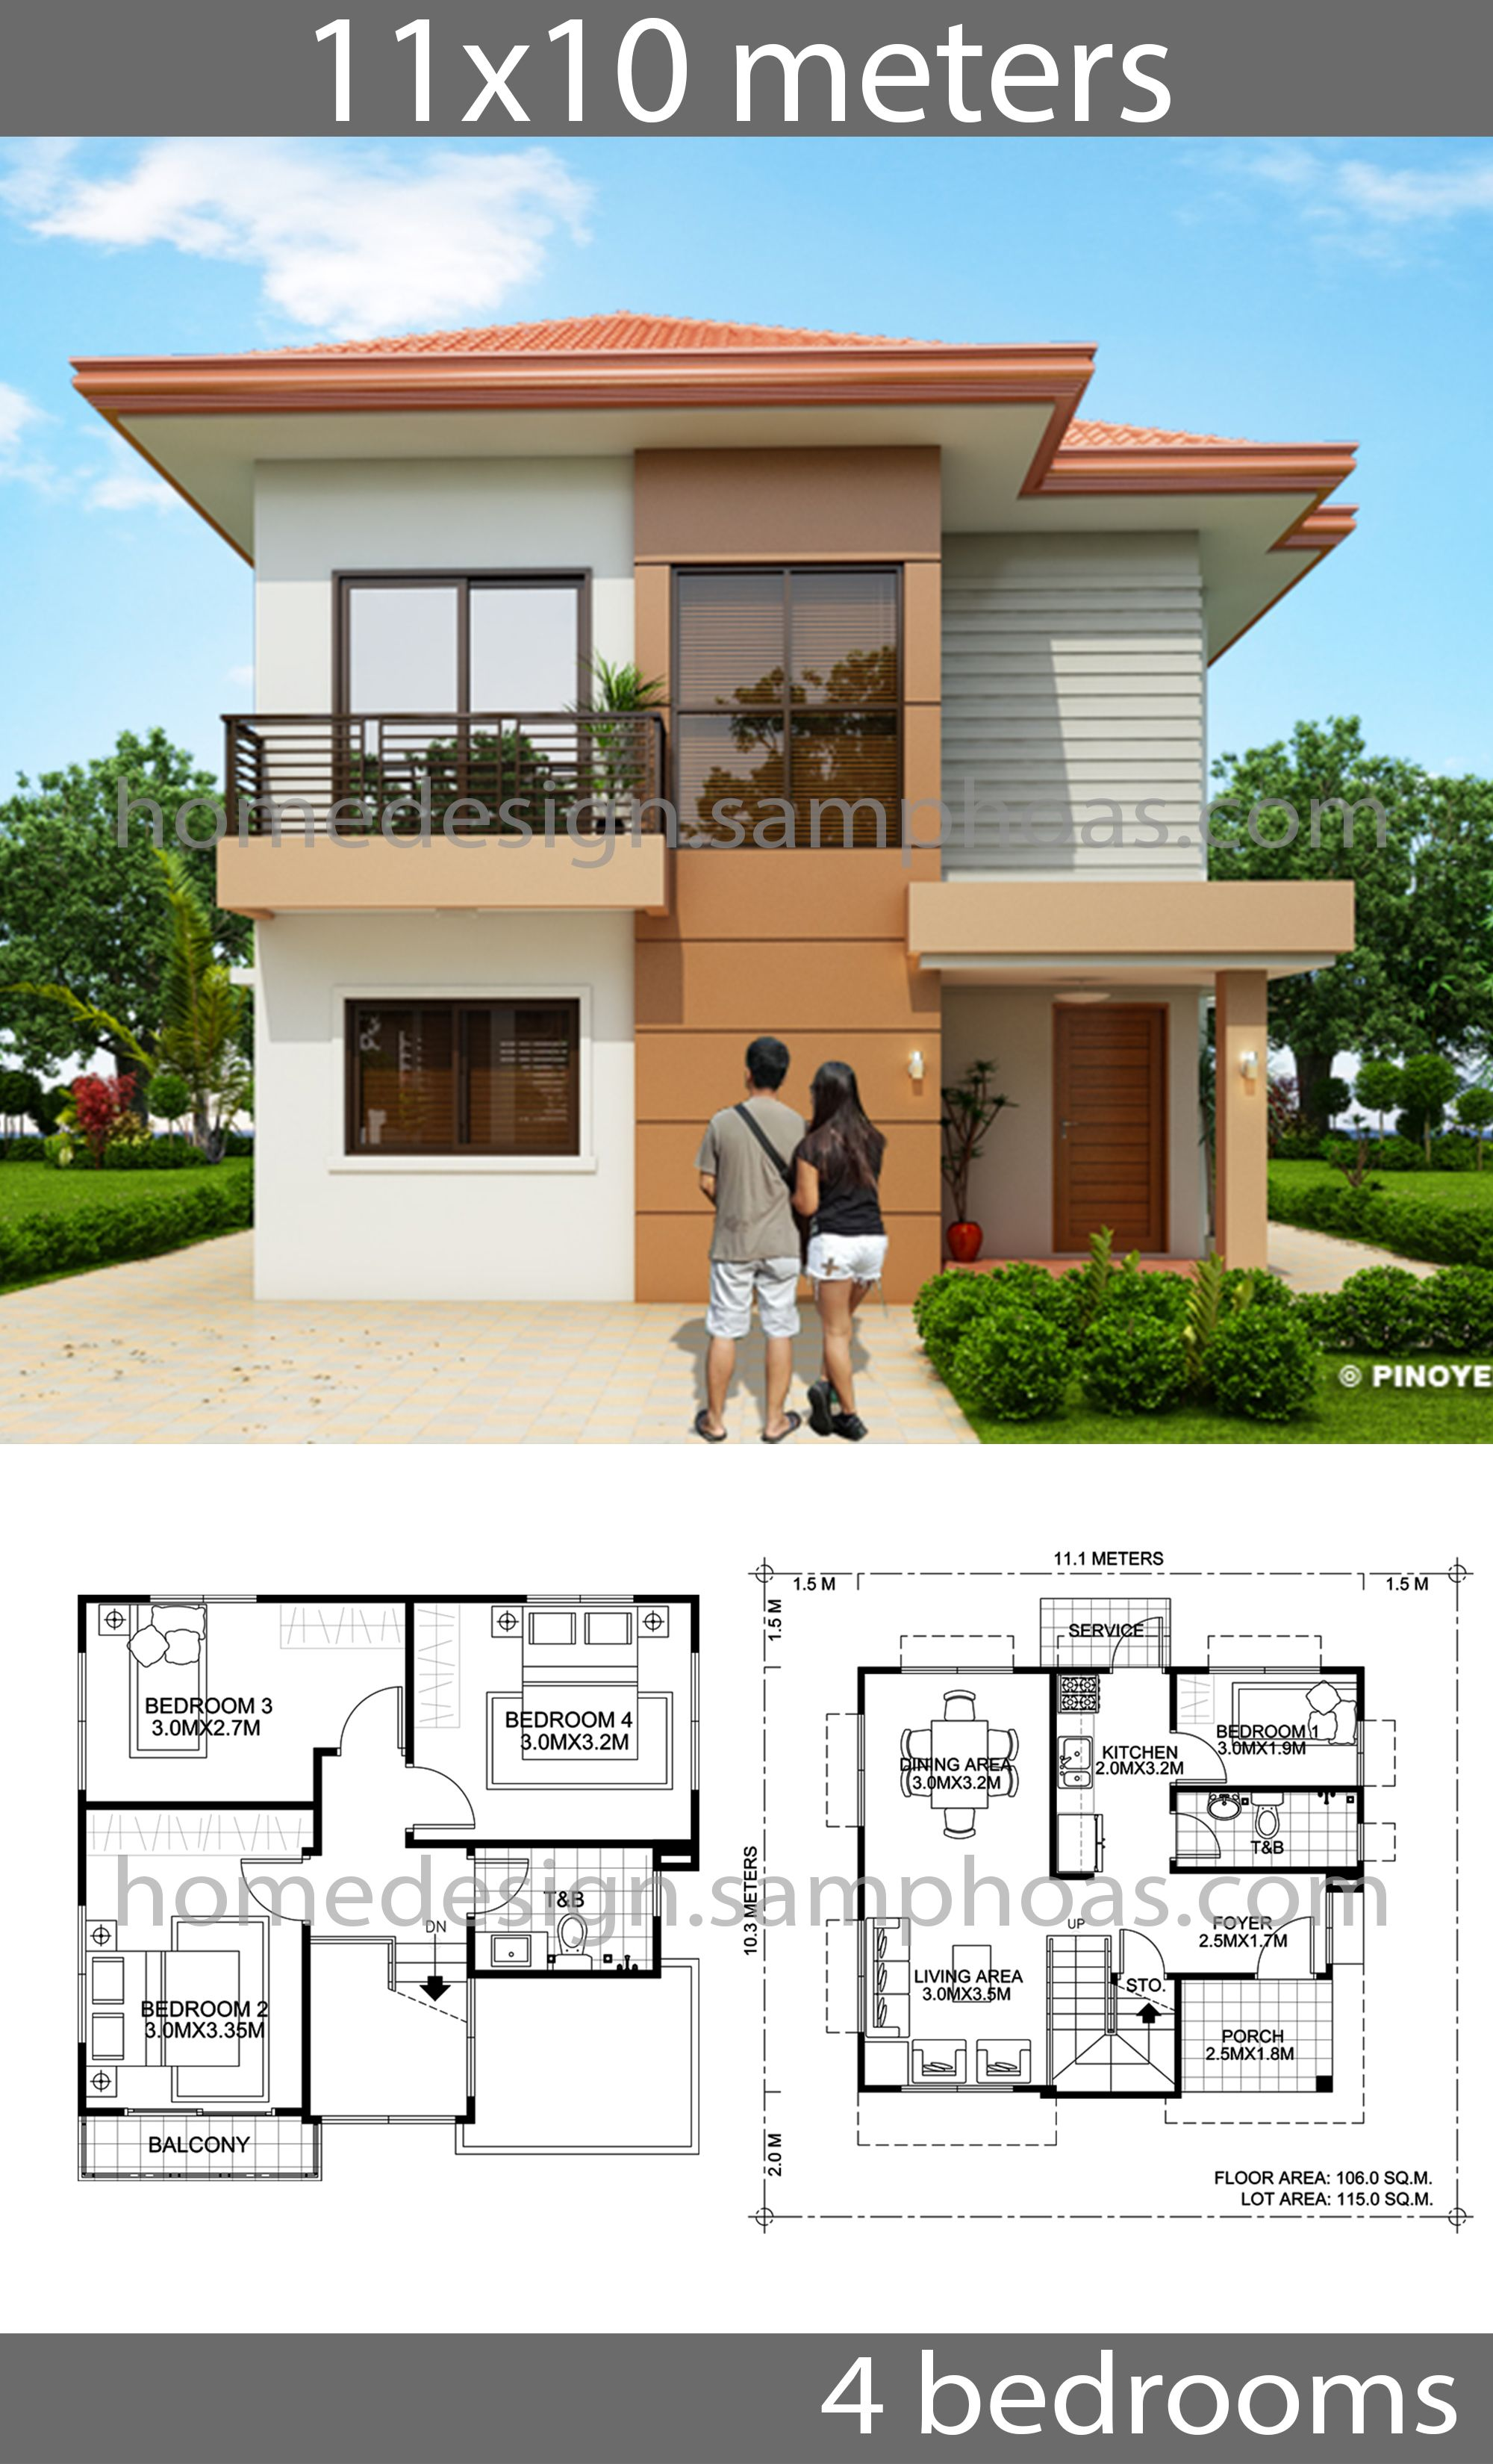 House Design Plans 10x11m With 4 Bedrooms House Idea In 2020 Affordable House Plans Duplex House Design Bungalow House Design